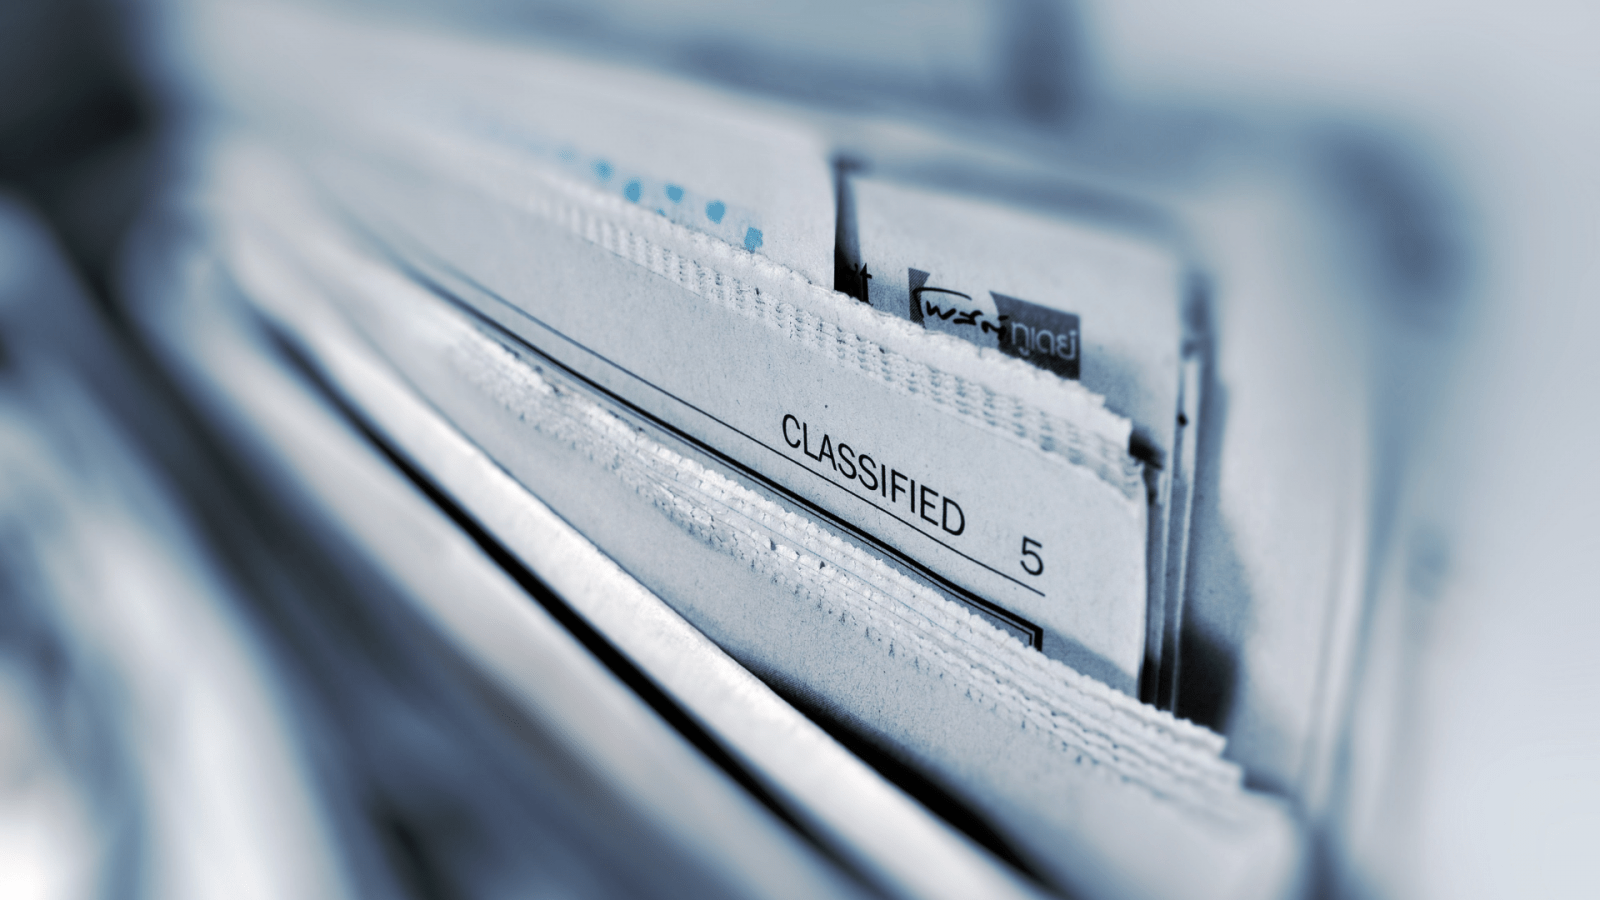 newspapers with 'classified' printed on one